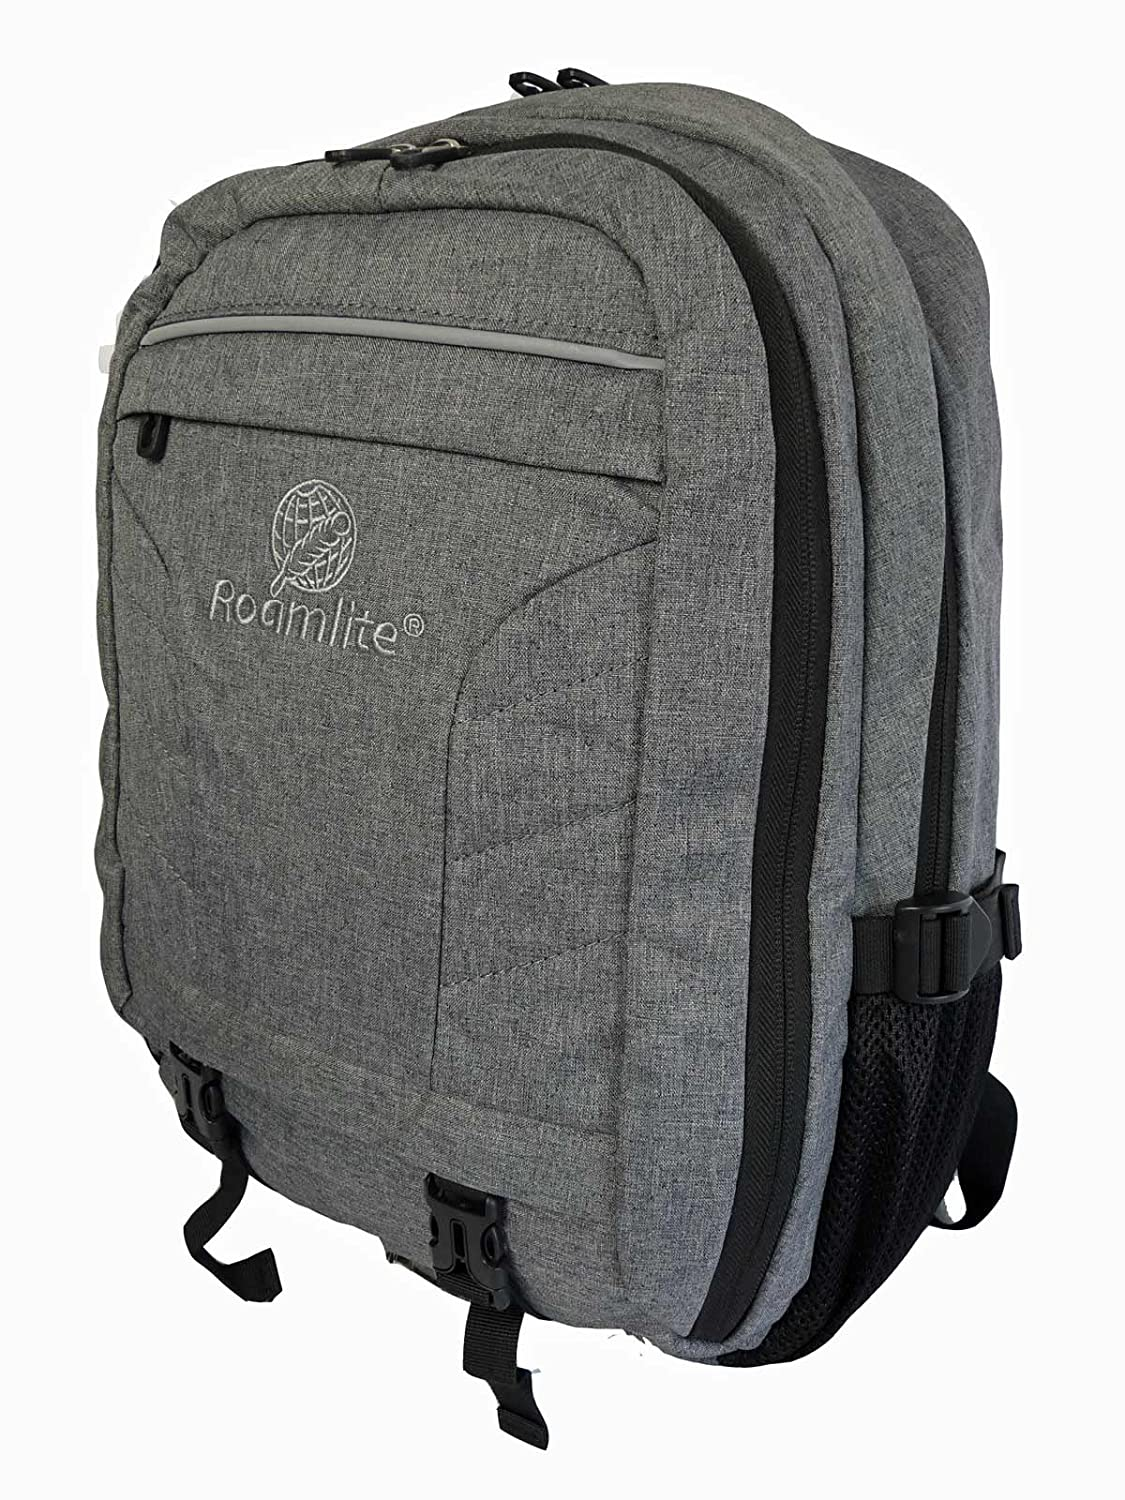 25274e13e Roamlite Laptop Backpack - Padded Sleeve Fits up to 15.6 inch Notebook  Screens - 25 Litre - Roamlite RL45GY Grey: Amazon.co.uk: Luggage